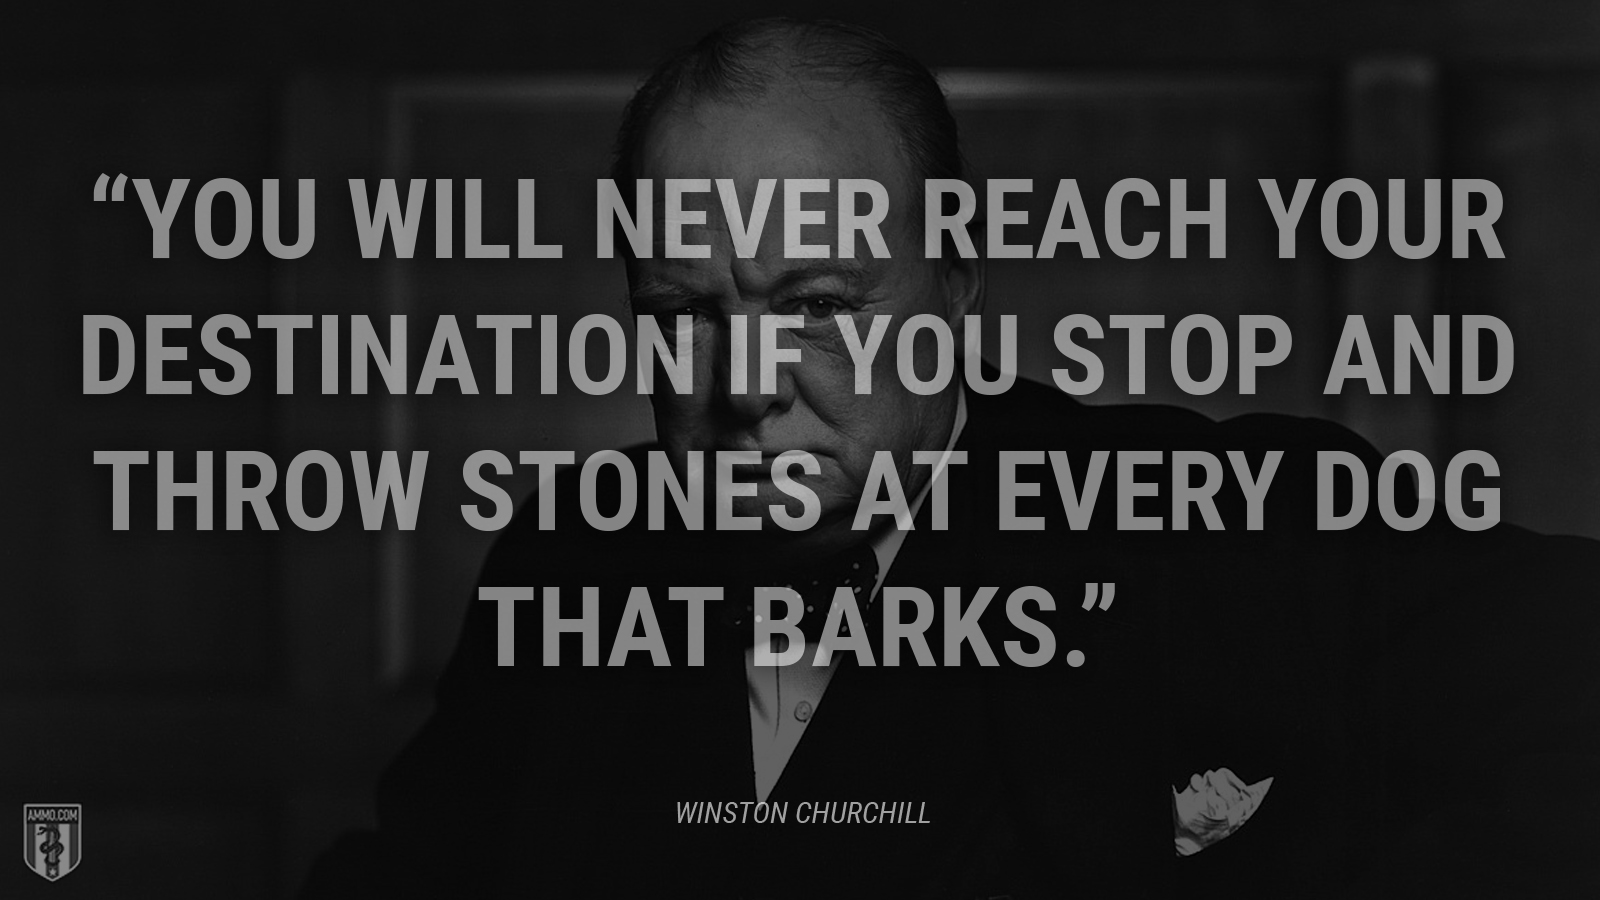 """You will never reach your destination if you stop and throw stones at every dog that barks."" - Winston Churchill"